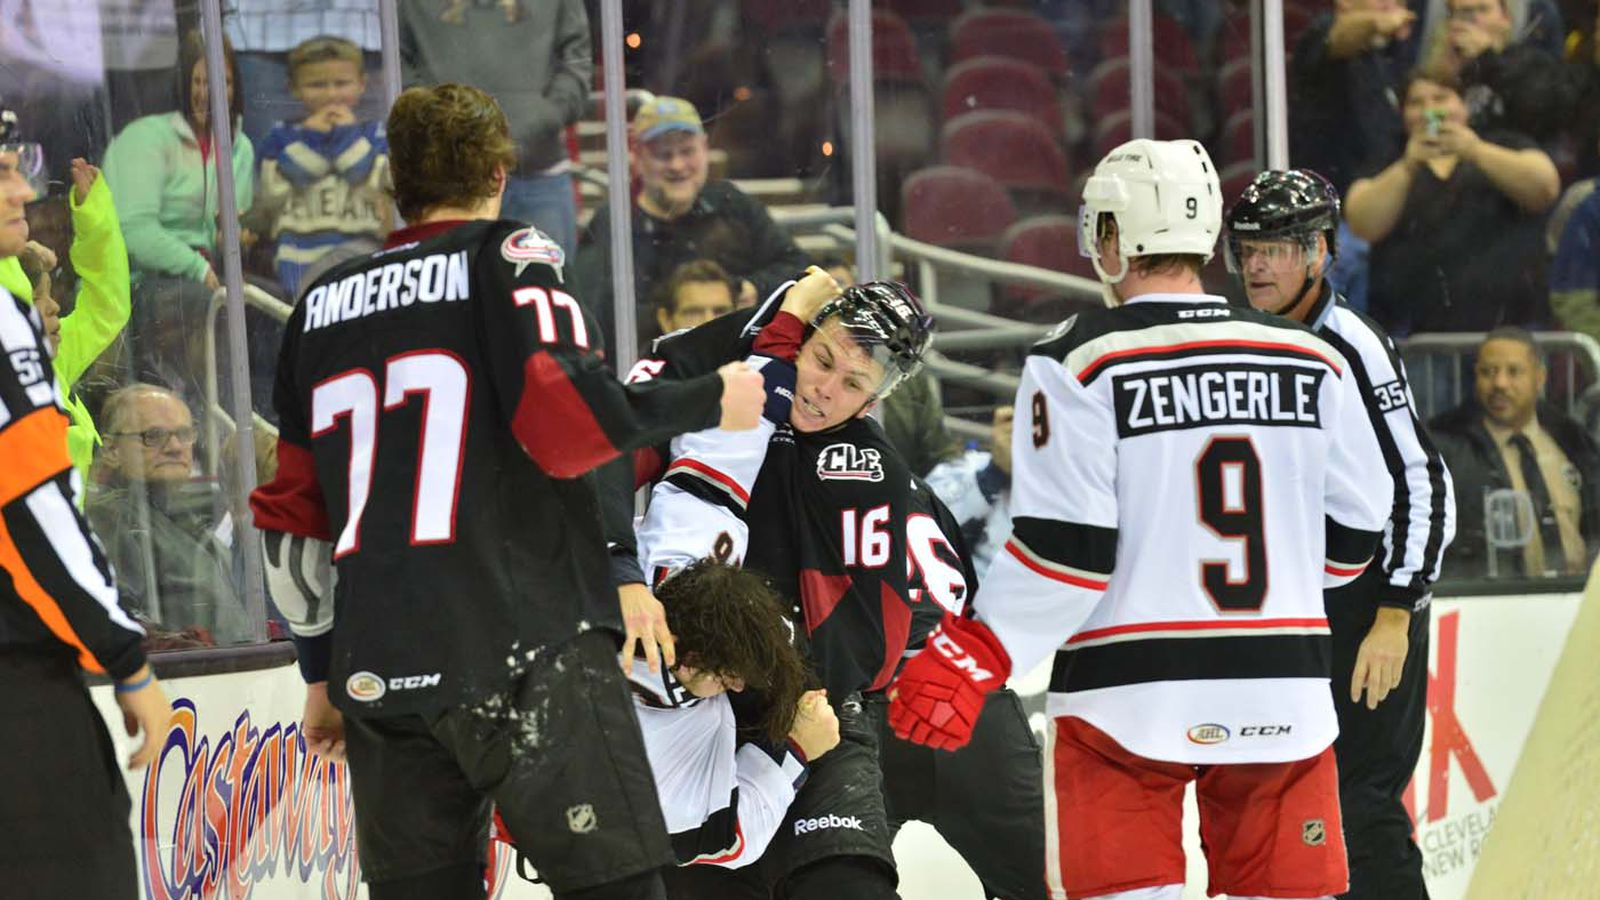 Monsters-griffins151227-43.0.0